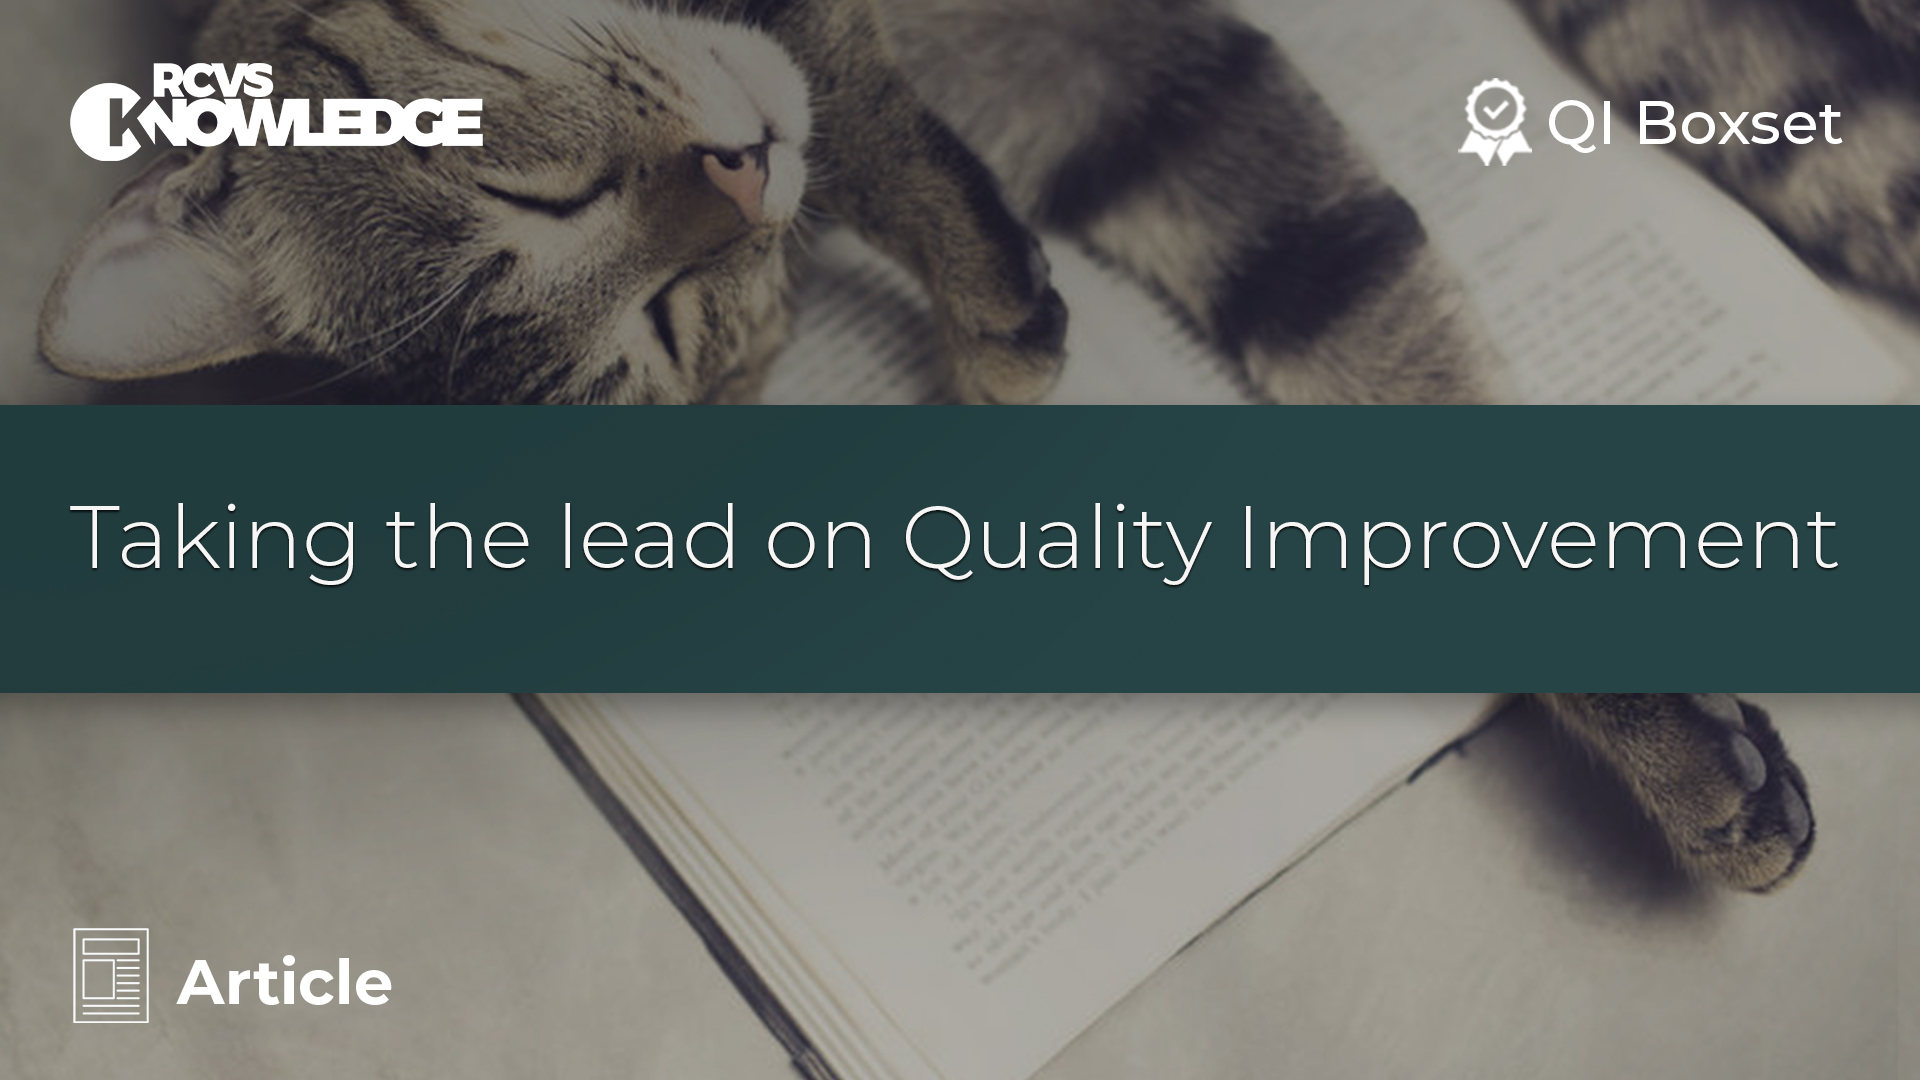 Taking the lead on Quality Improvement